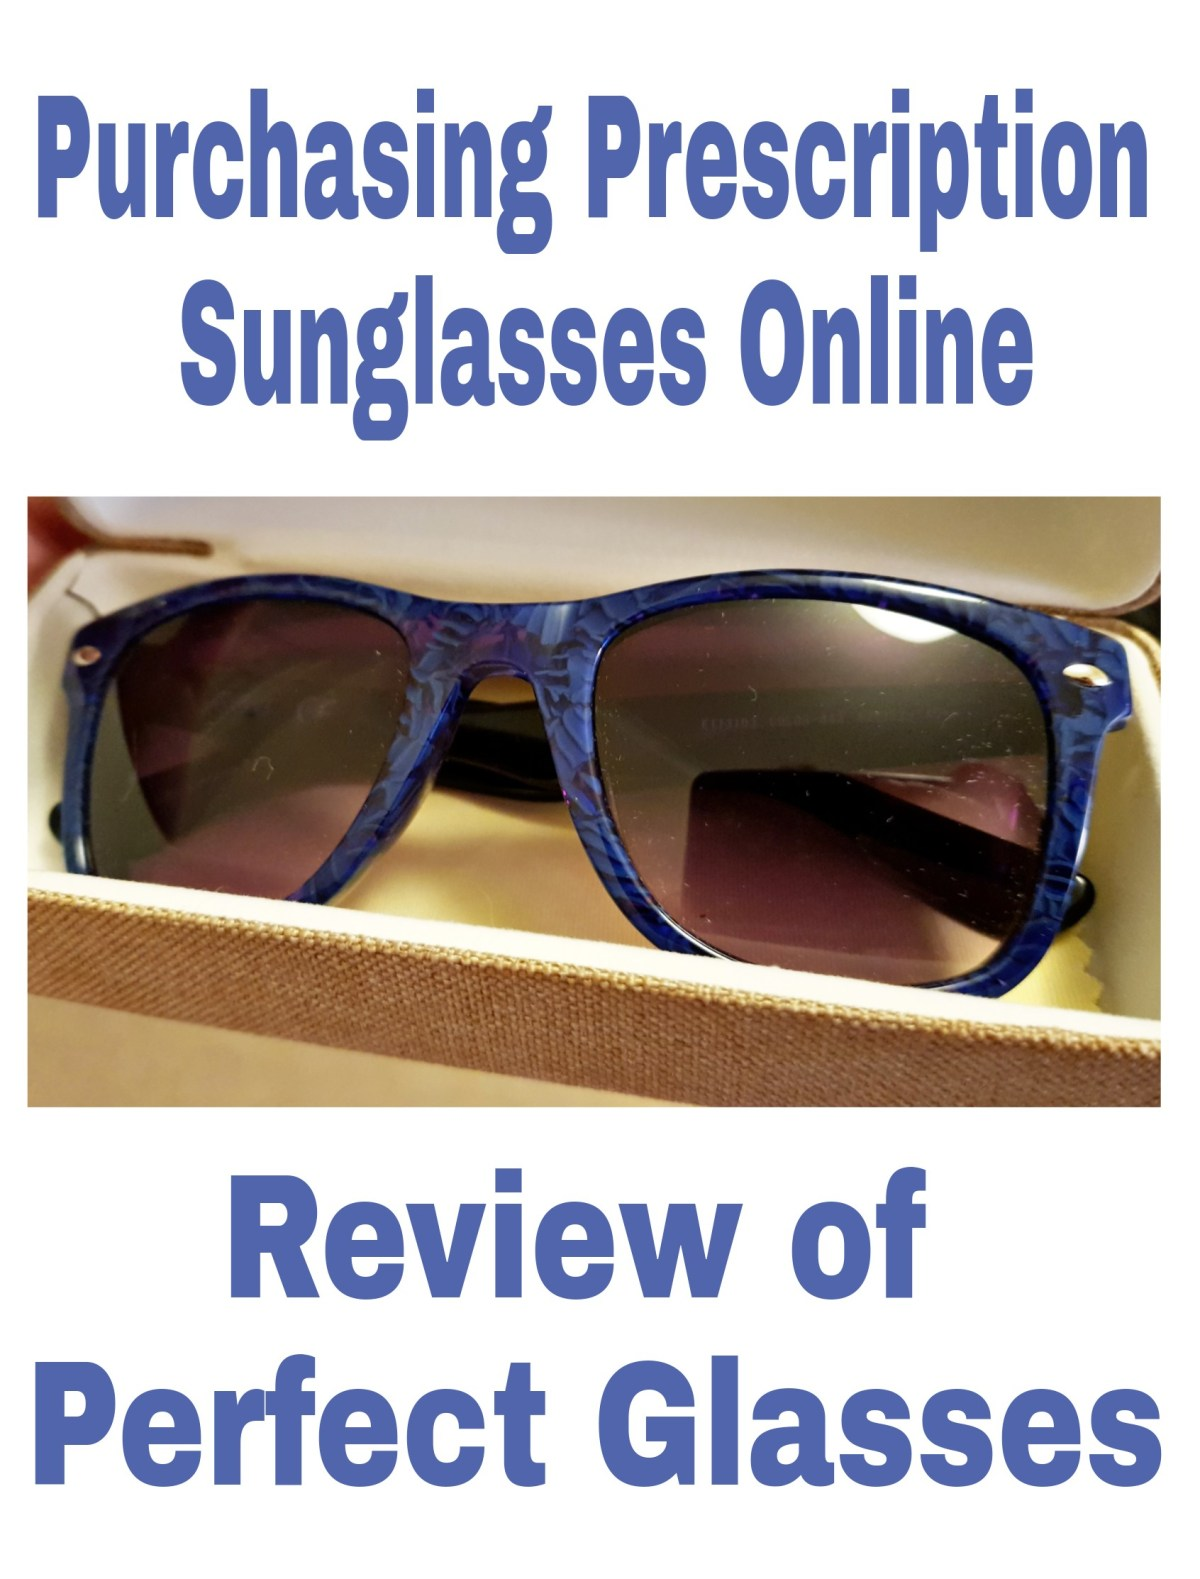 Purchasing Prescription Sunglasses Online: Review of Perfect Glasses